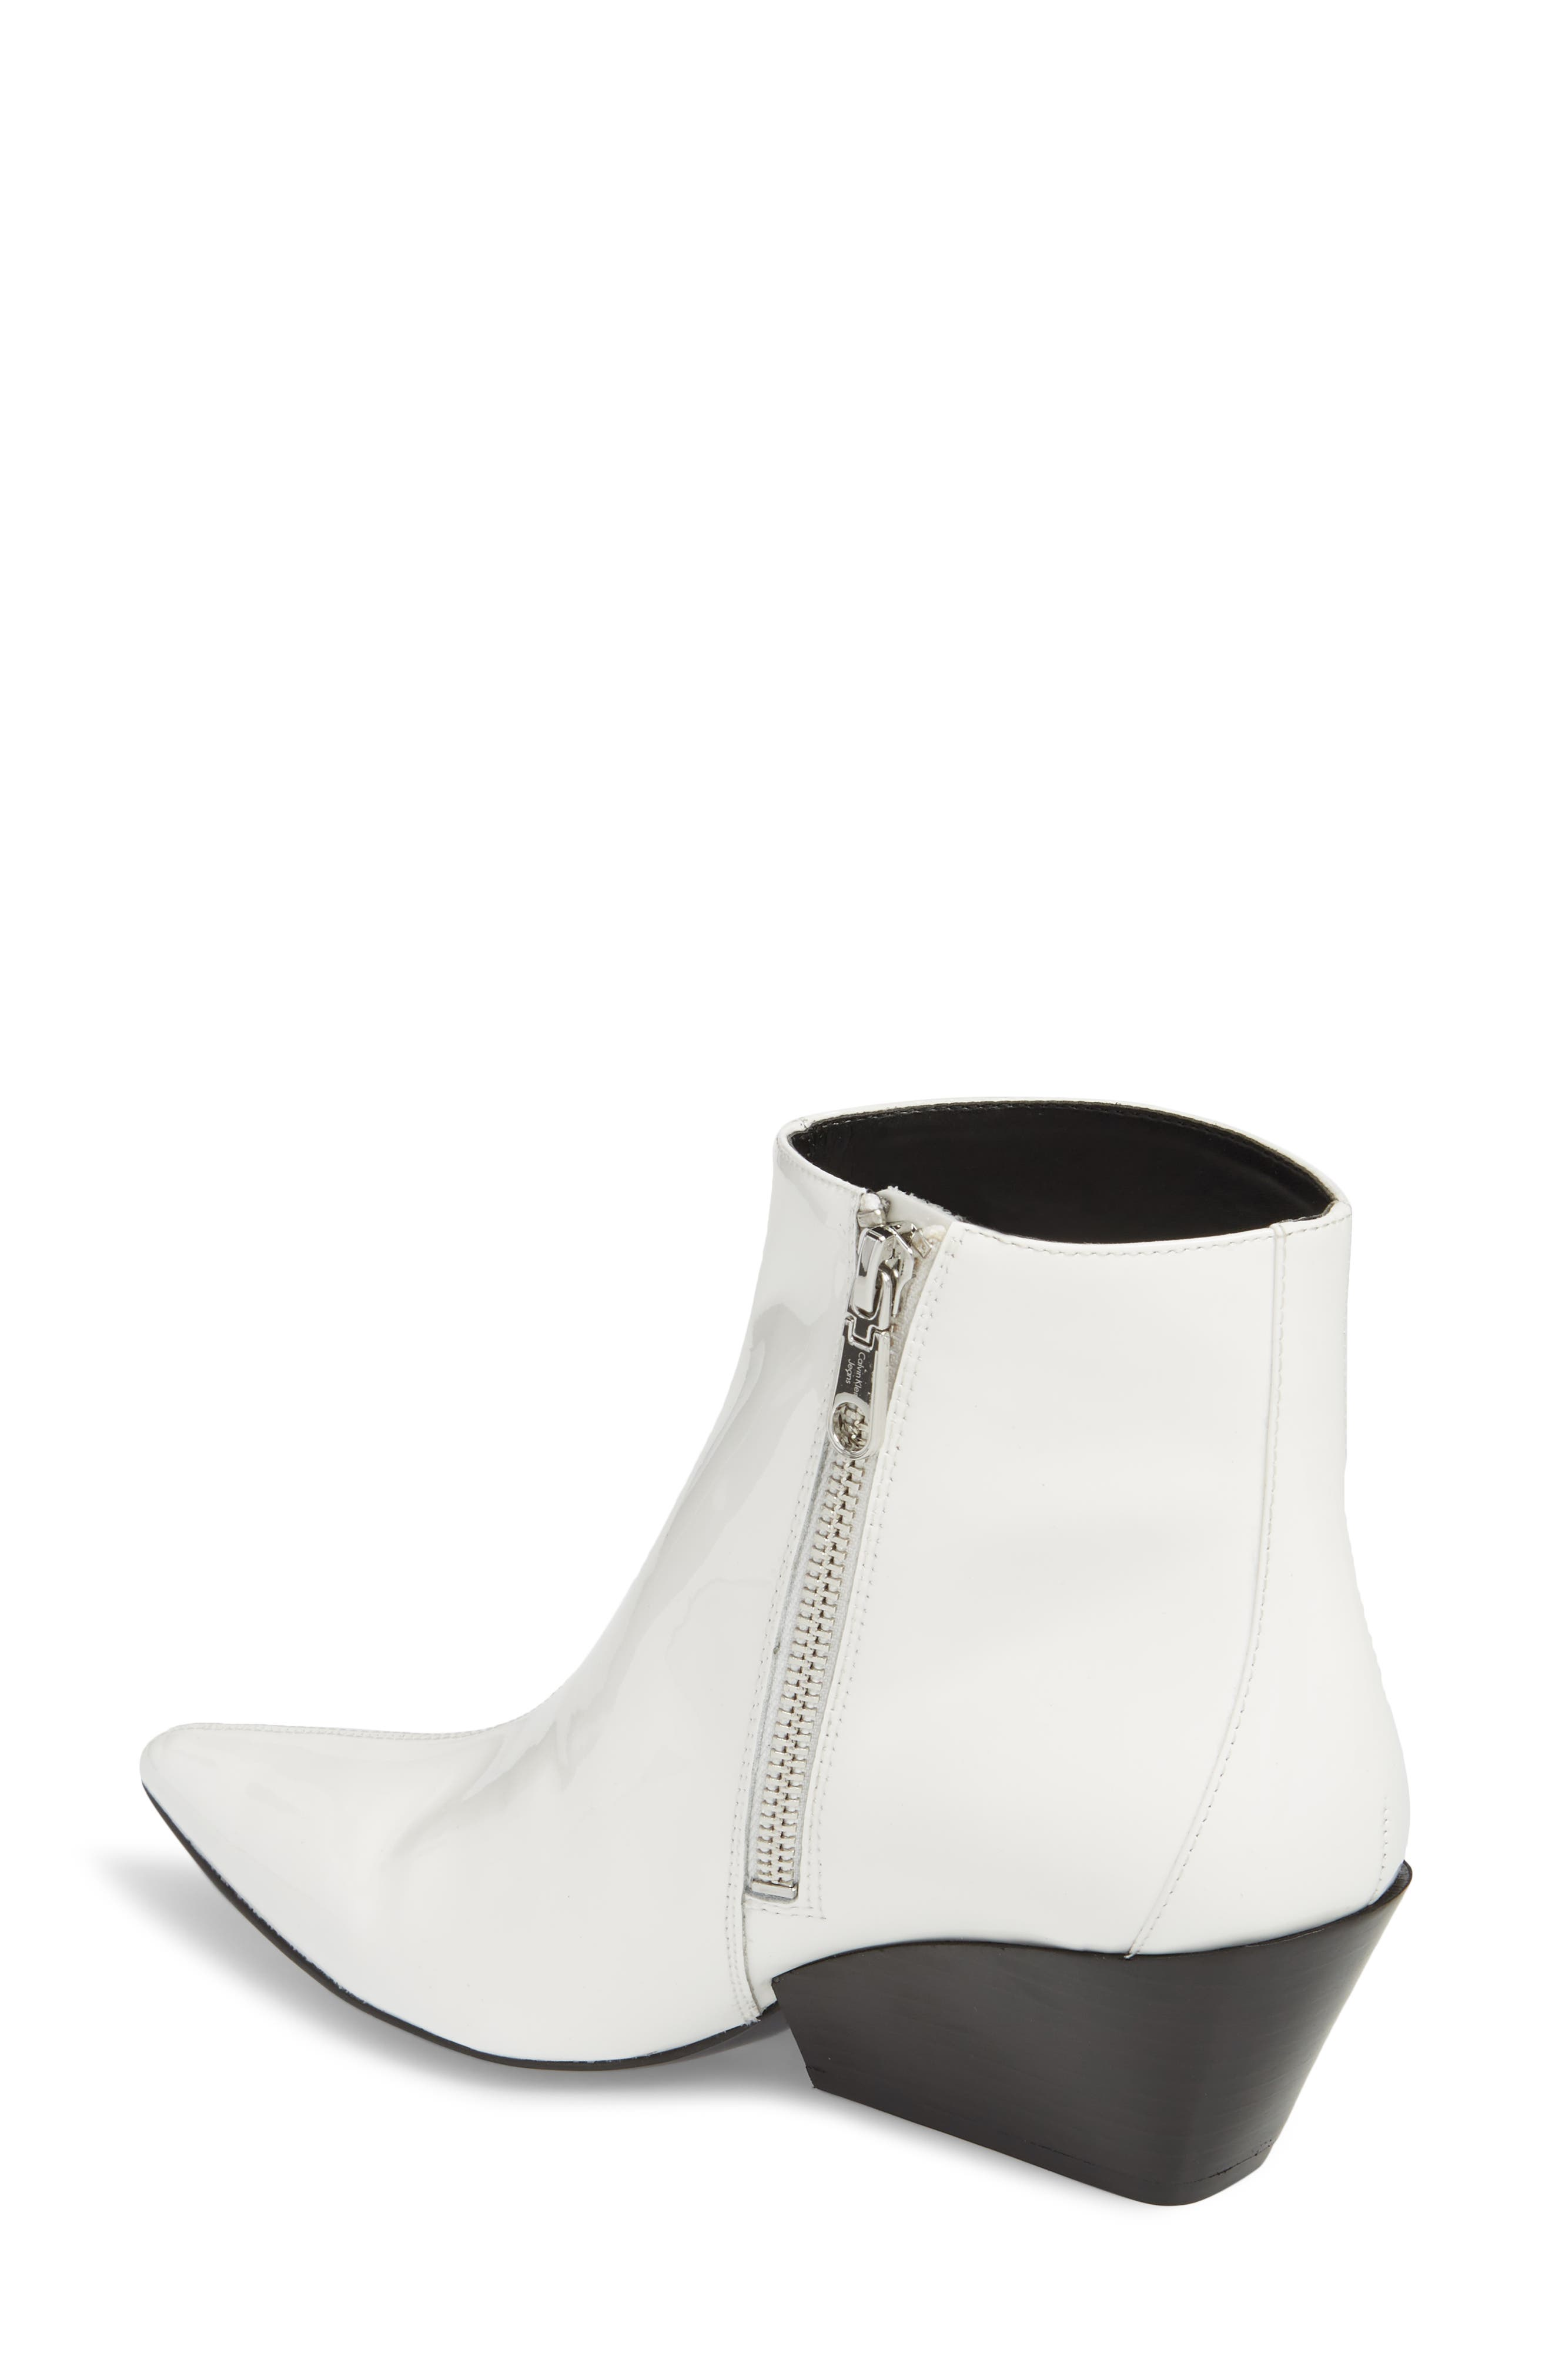 Freda Pointy Toe Bootie,                             Alternate thumbnail 2, color,                             White Patent